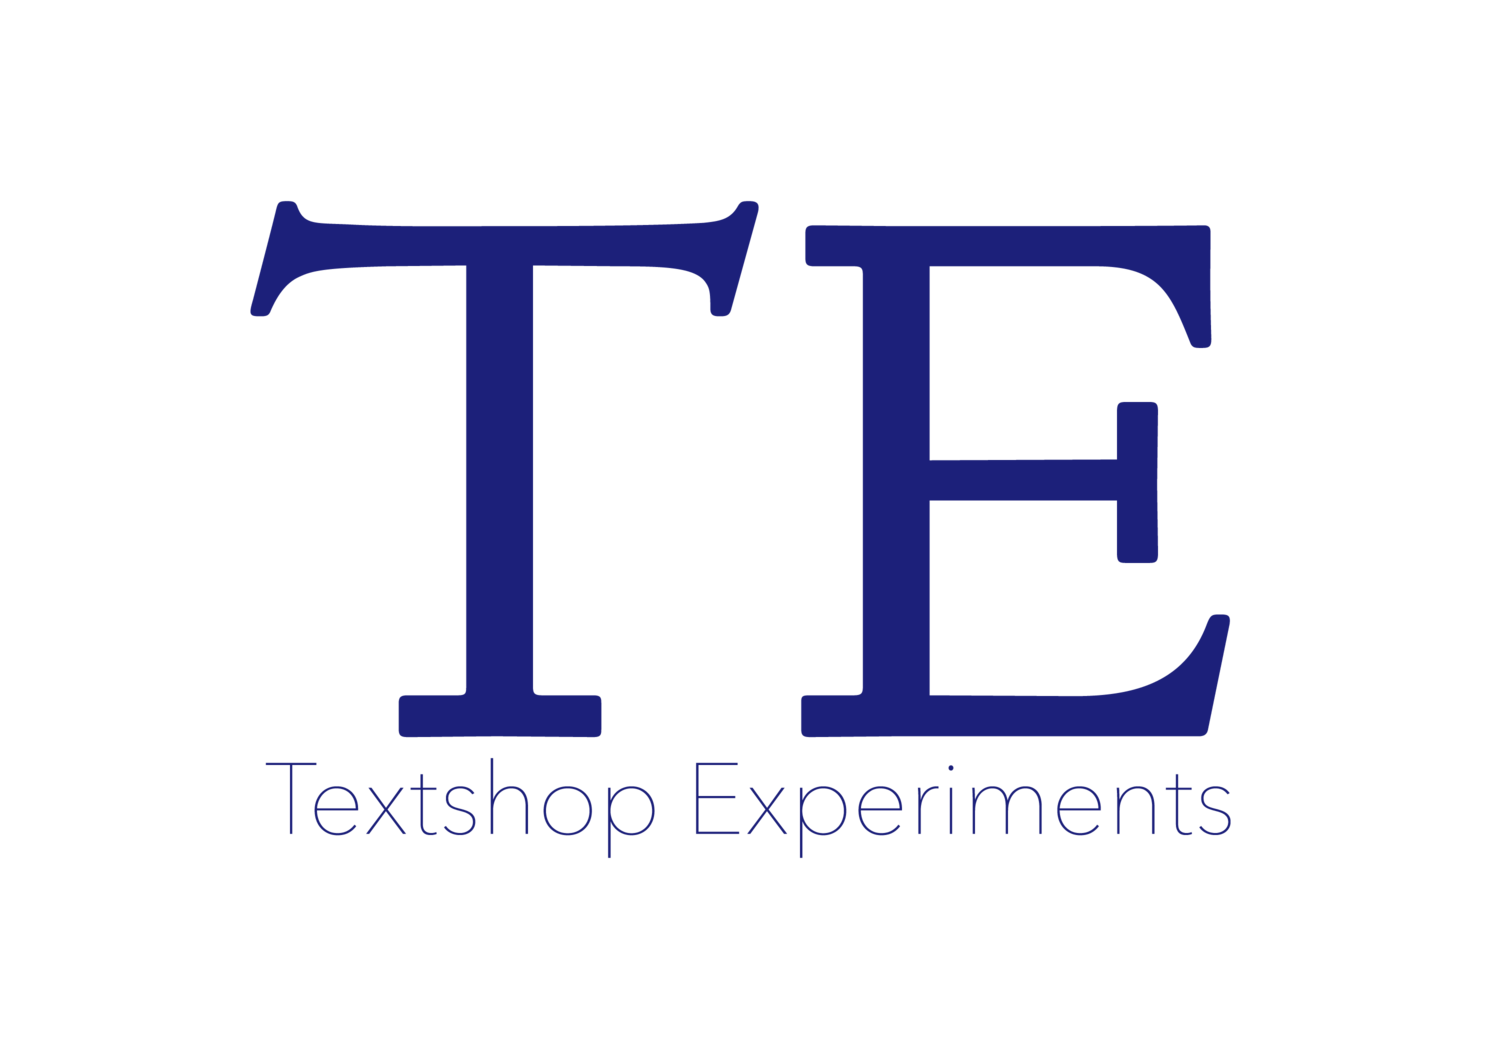 Textshop Experiments